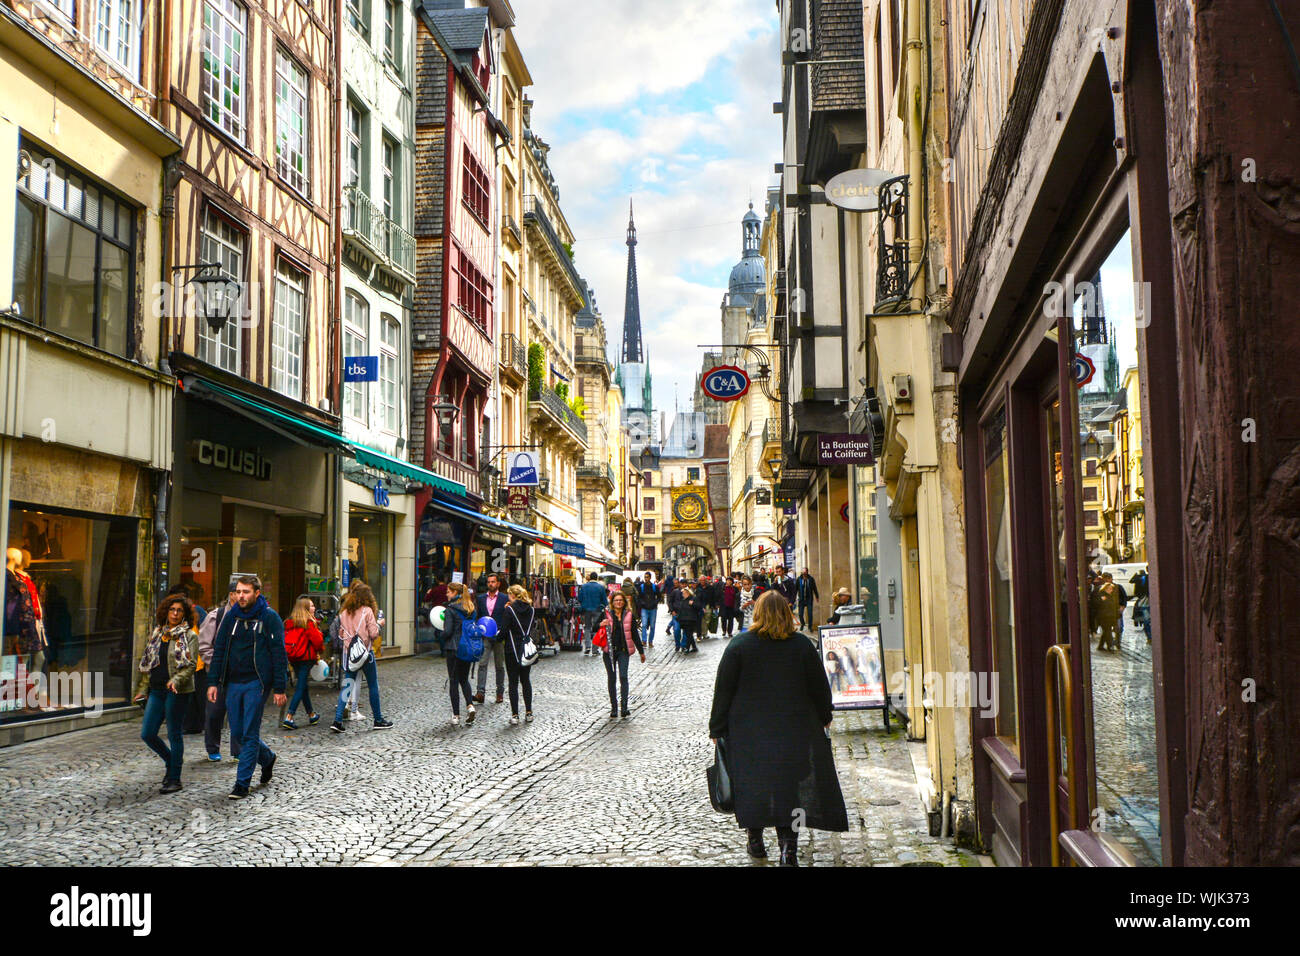 Tourists and locals enjoy a walk on the famous Rue du Horloge, the main tourist shopping street near the medieval Astronomical Clock in Rouen, France Stock Photo